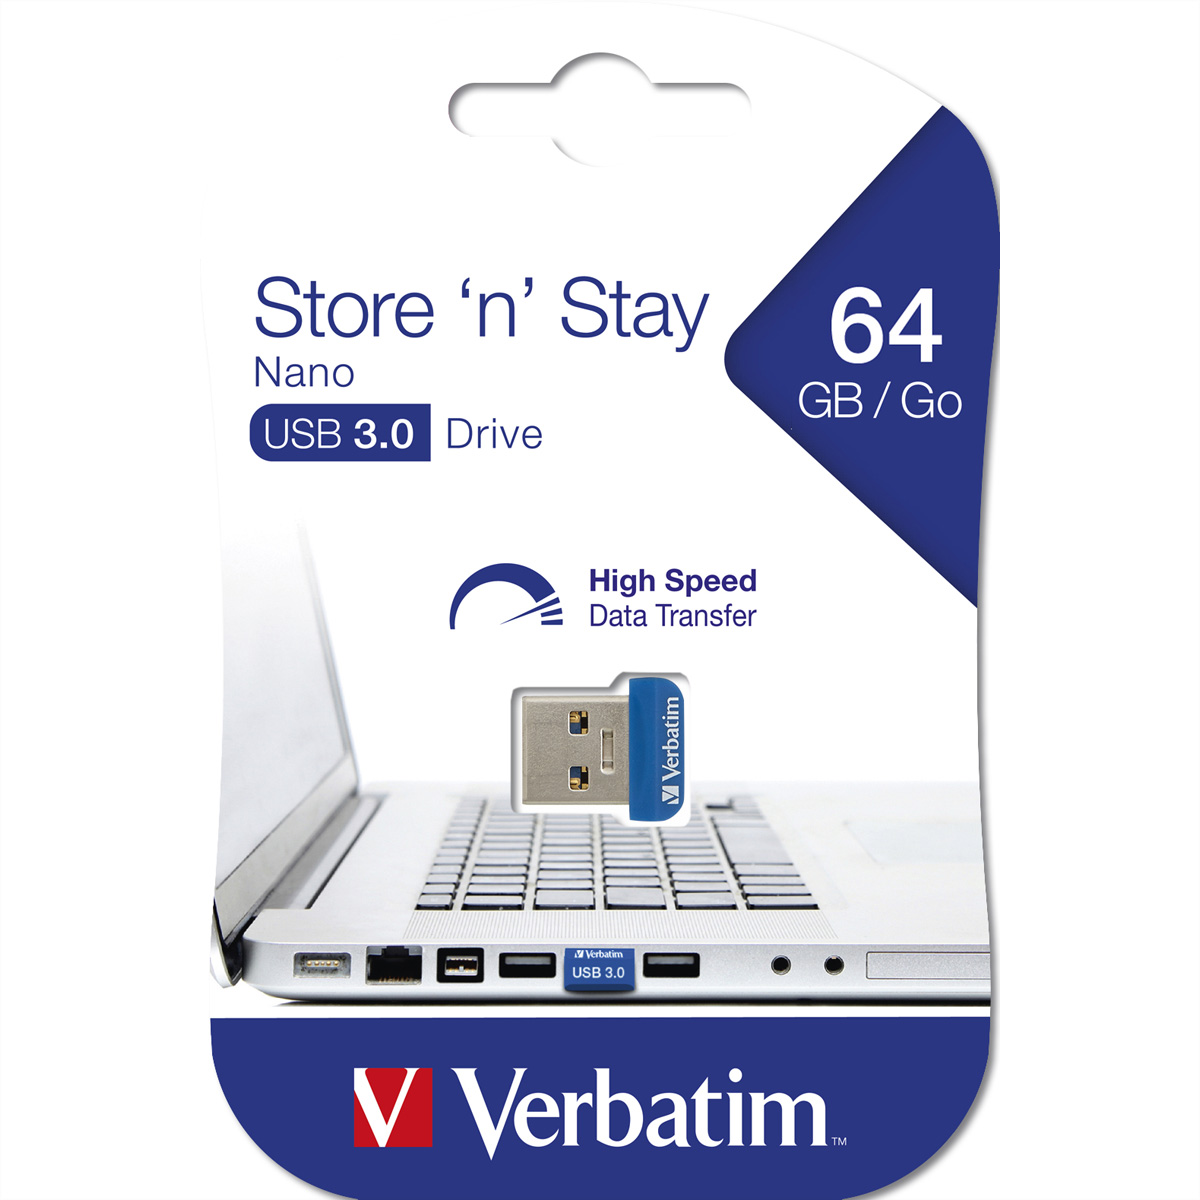 VERBATIM Store ''n'' Stay Nano USB 3.0, 64GB